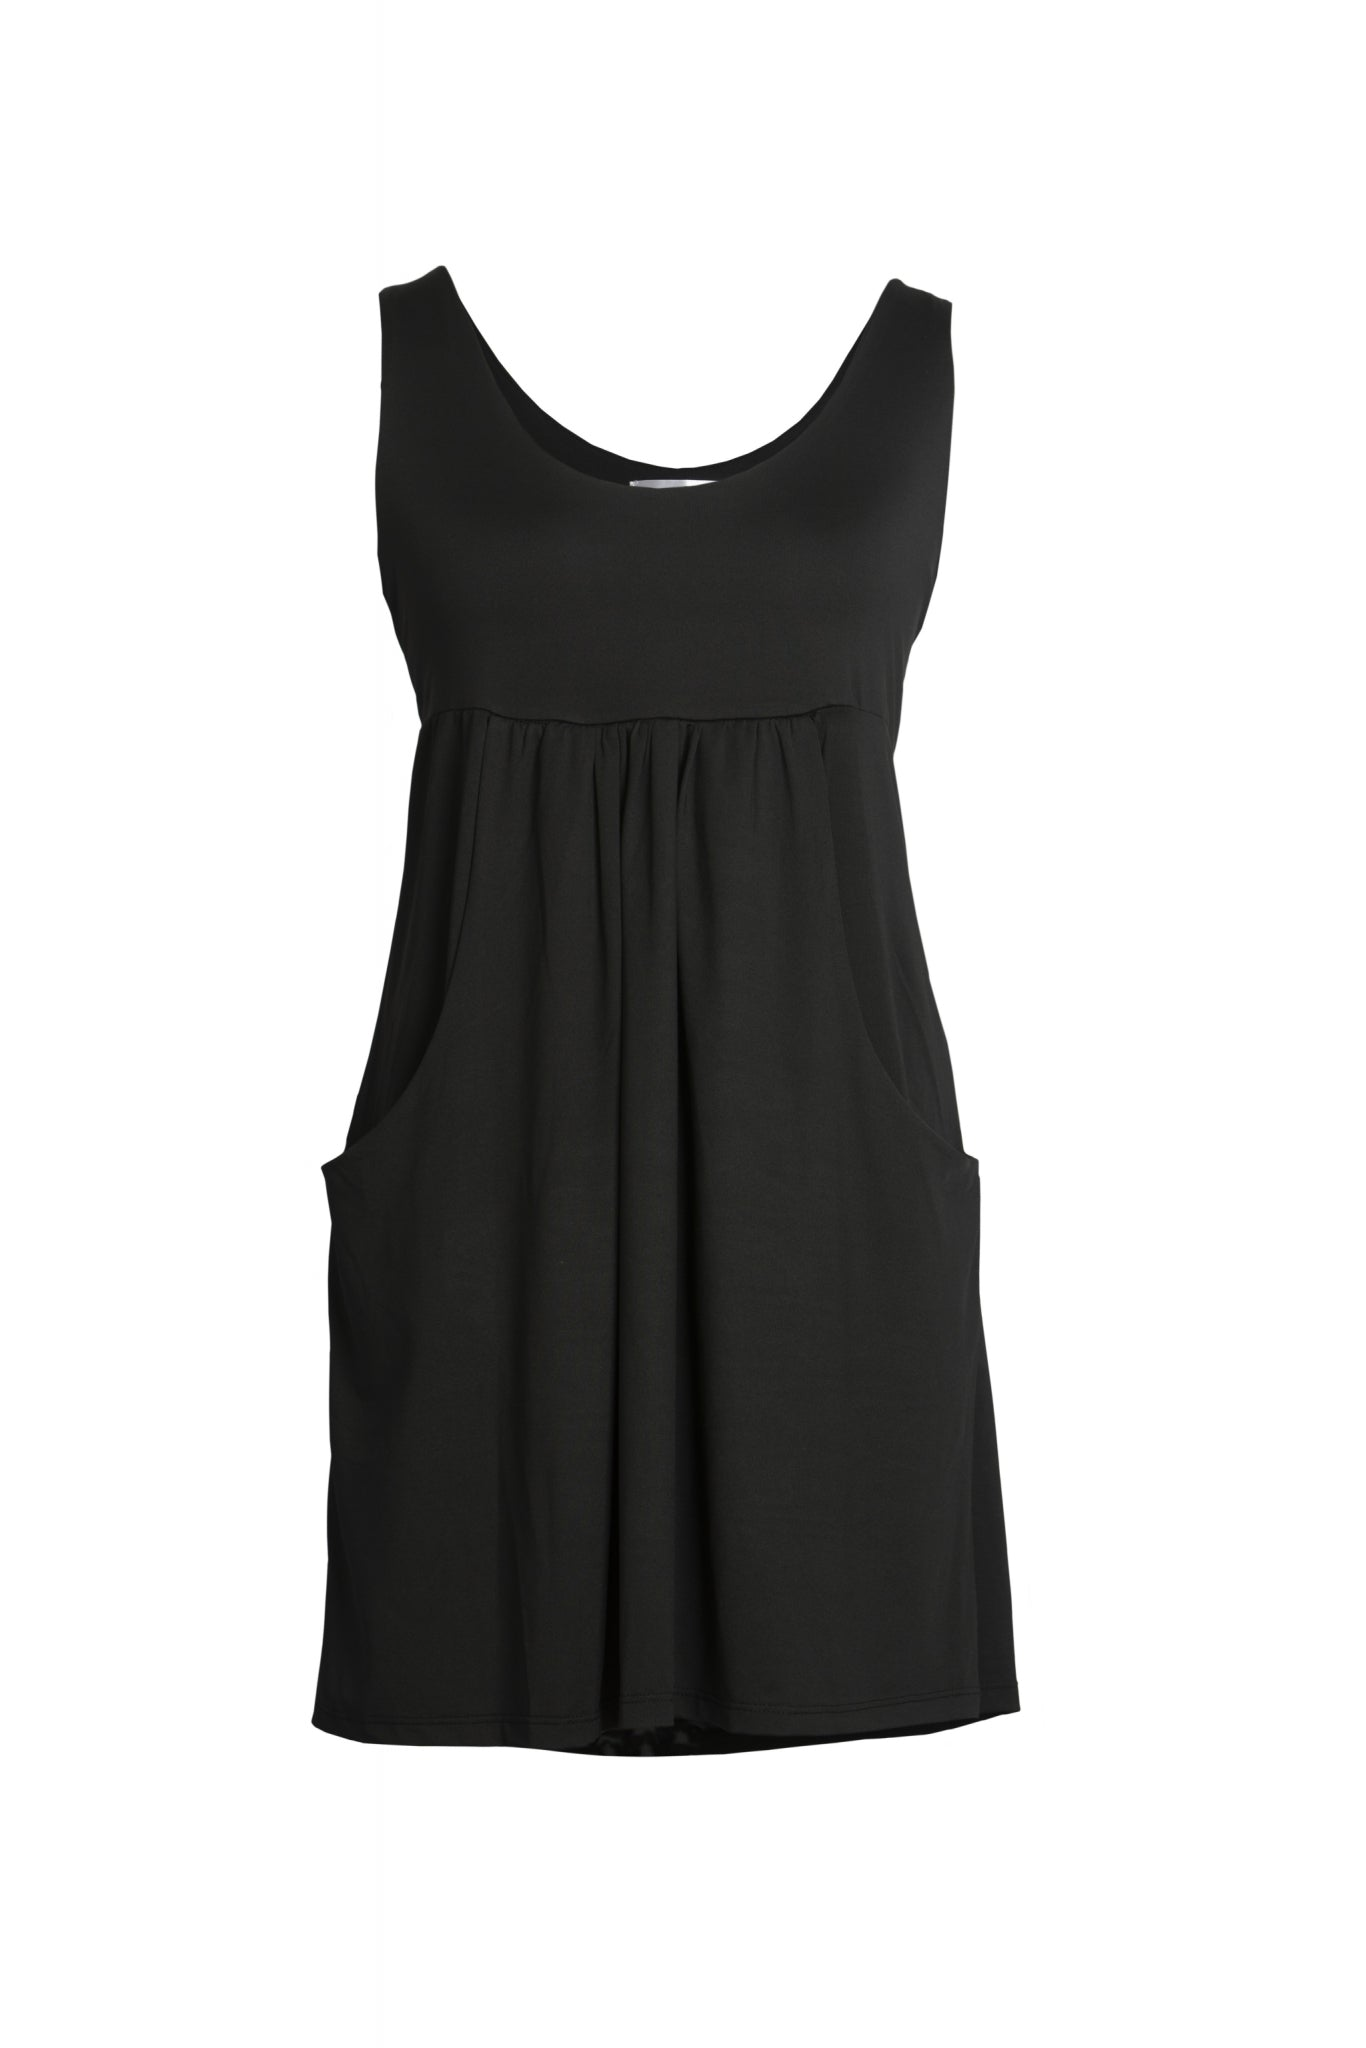 Black Anytime Dress Audrey Short